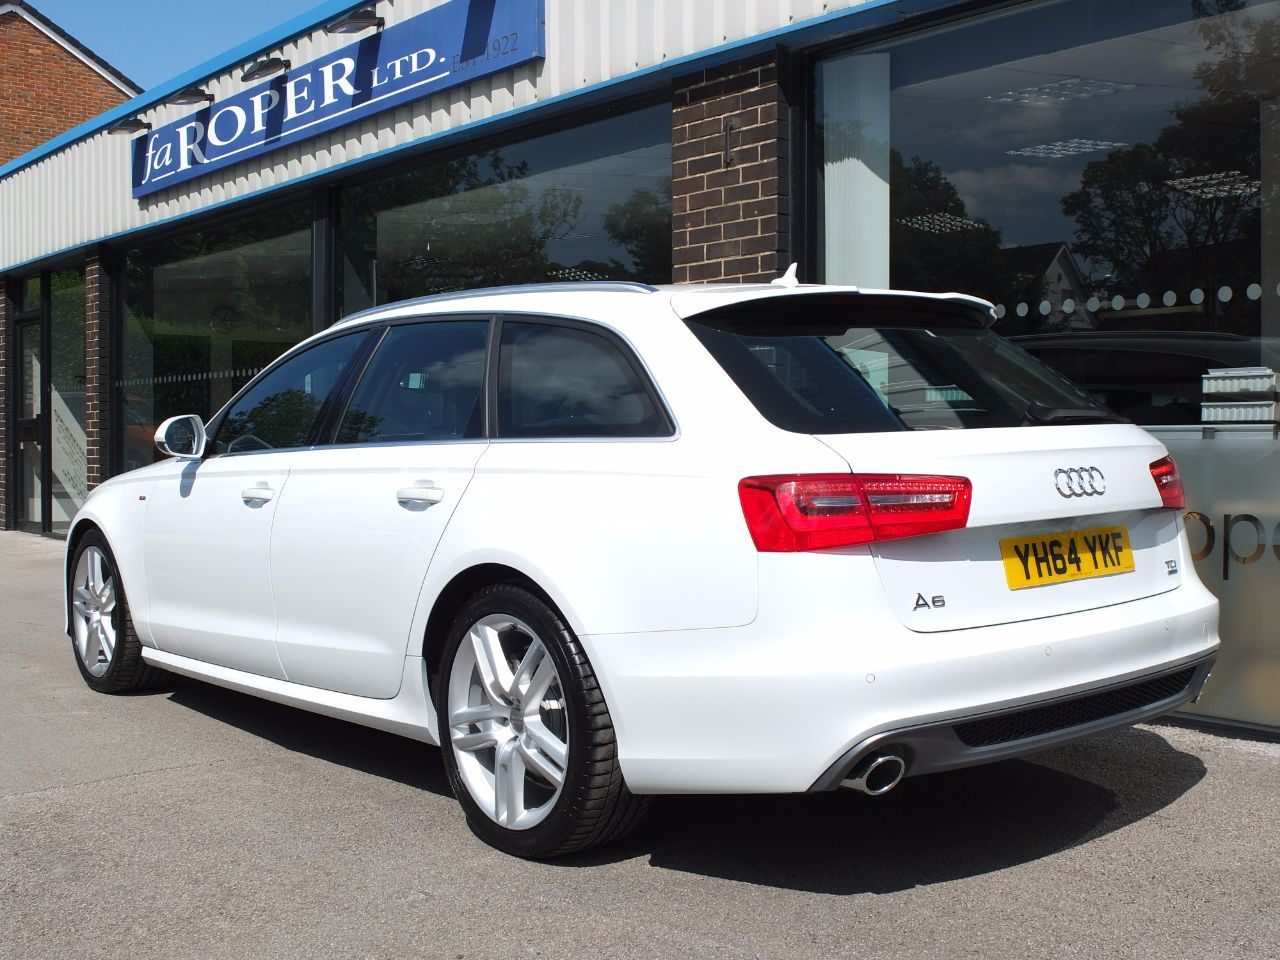 used audi a6 avant 3 0 tdi quattro s line s tronic auto 204ps for sale in bradford west. Black Bedroom Furniture Sets. Home Design Ideas